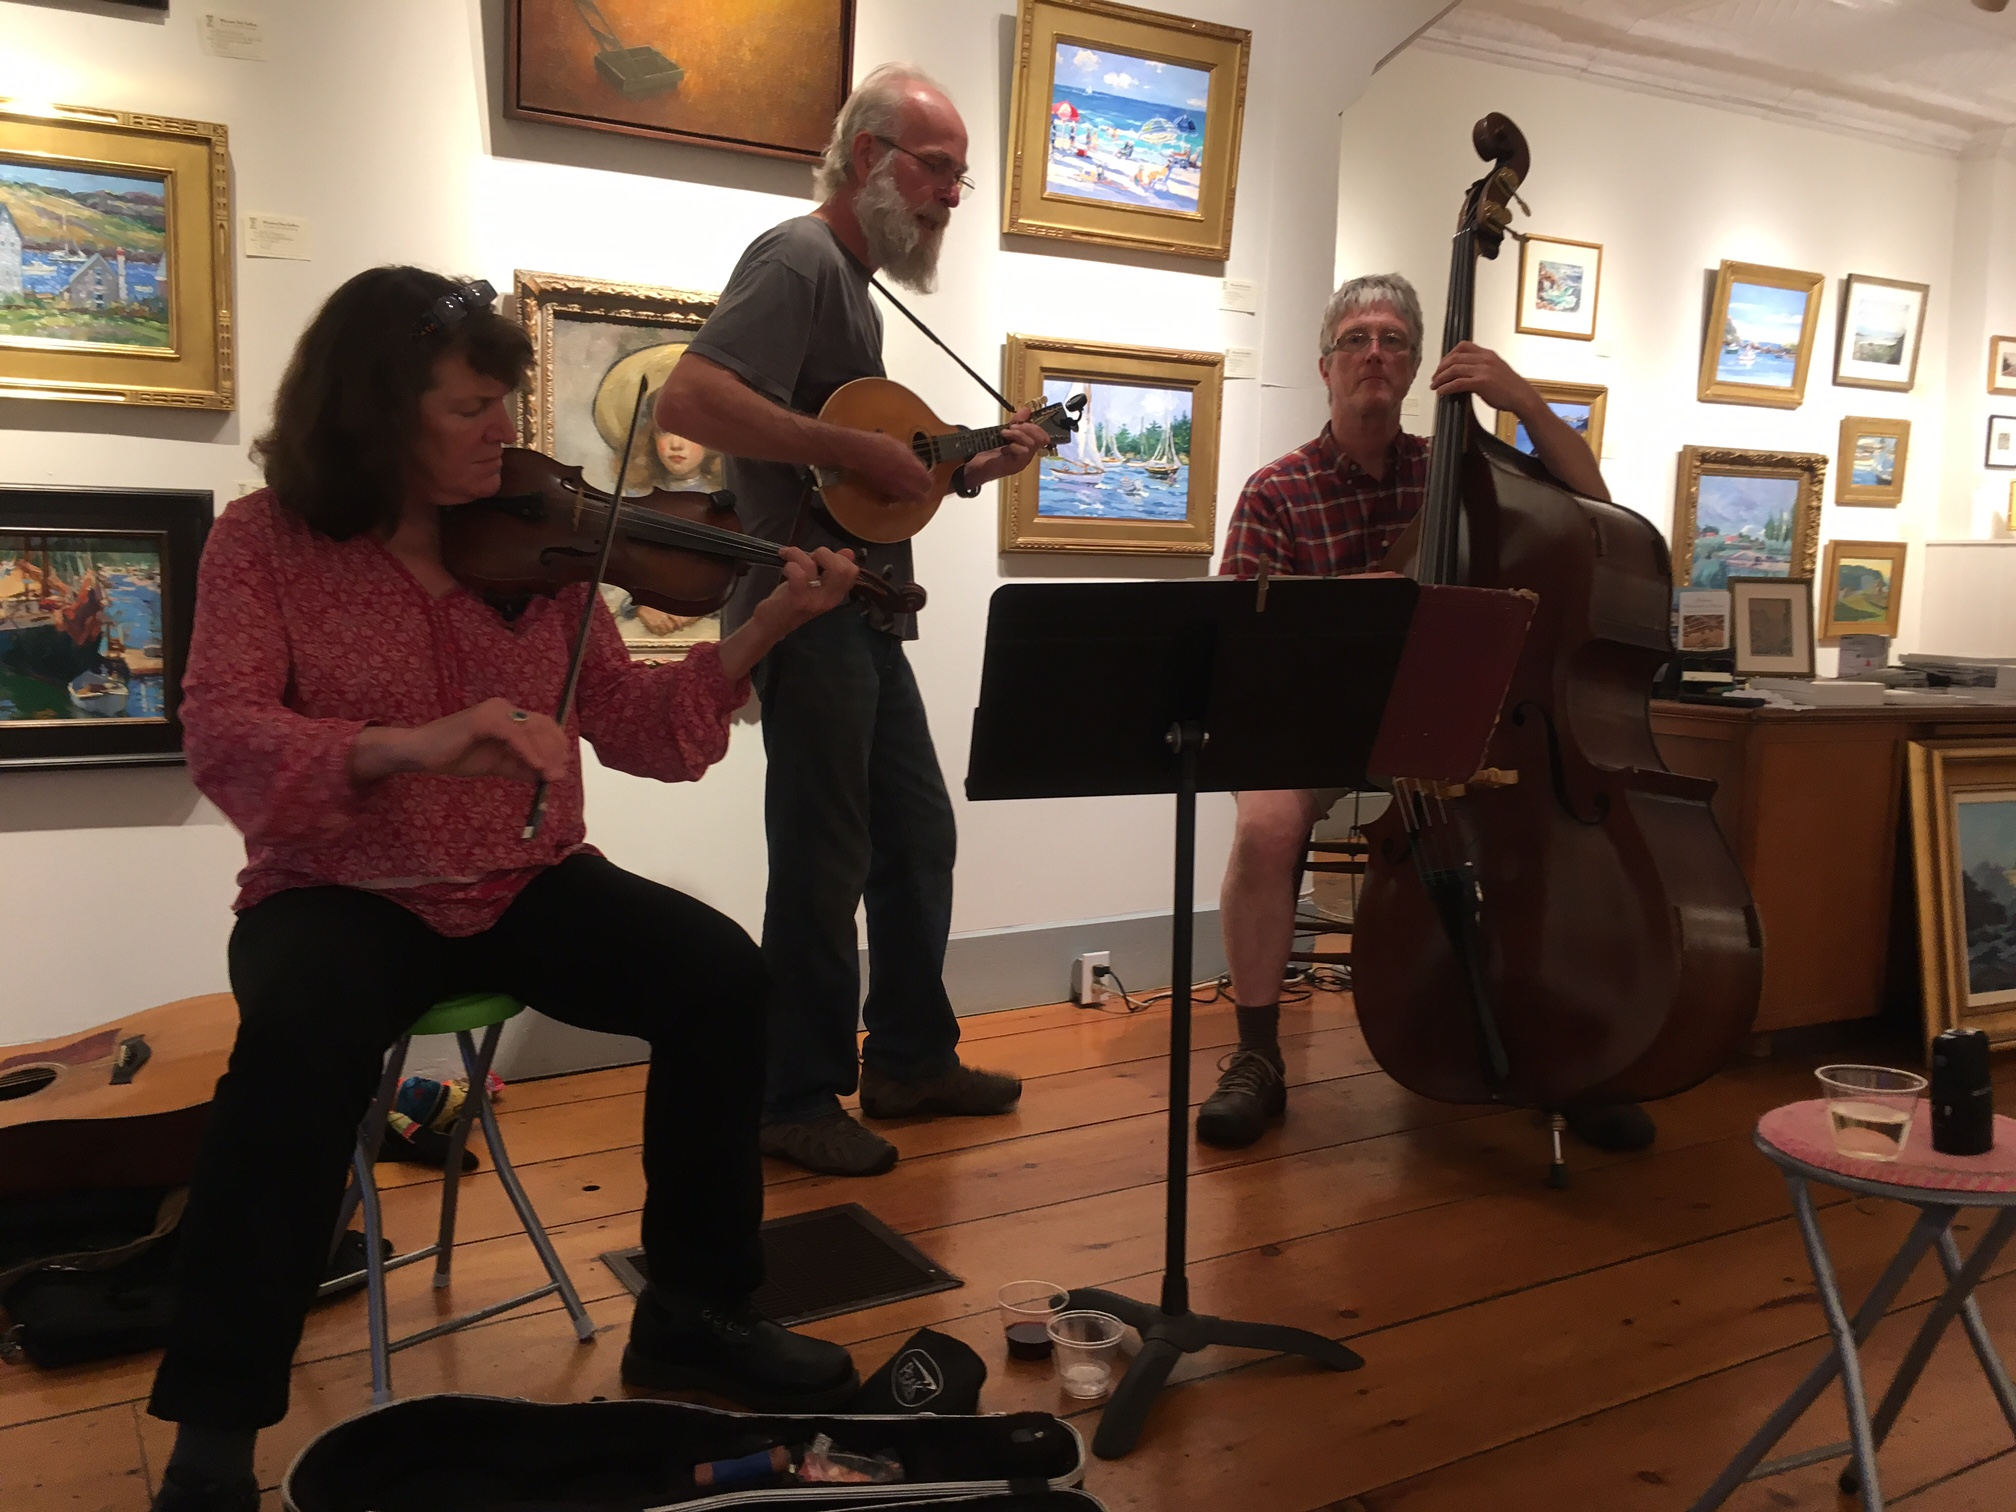 Married with Chitlins in Wiscasset Bay Gallery